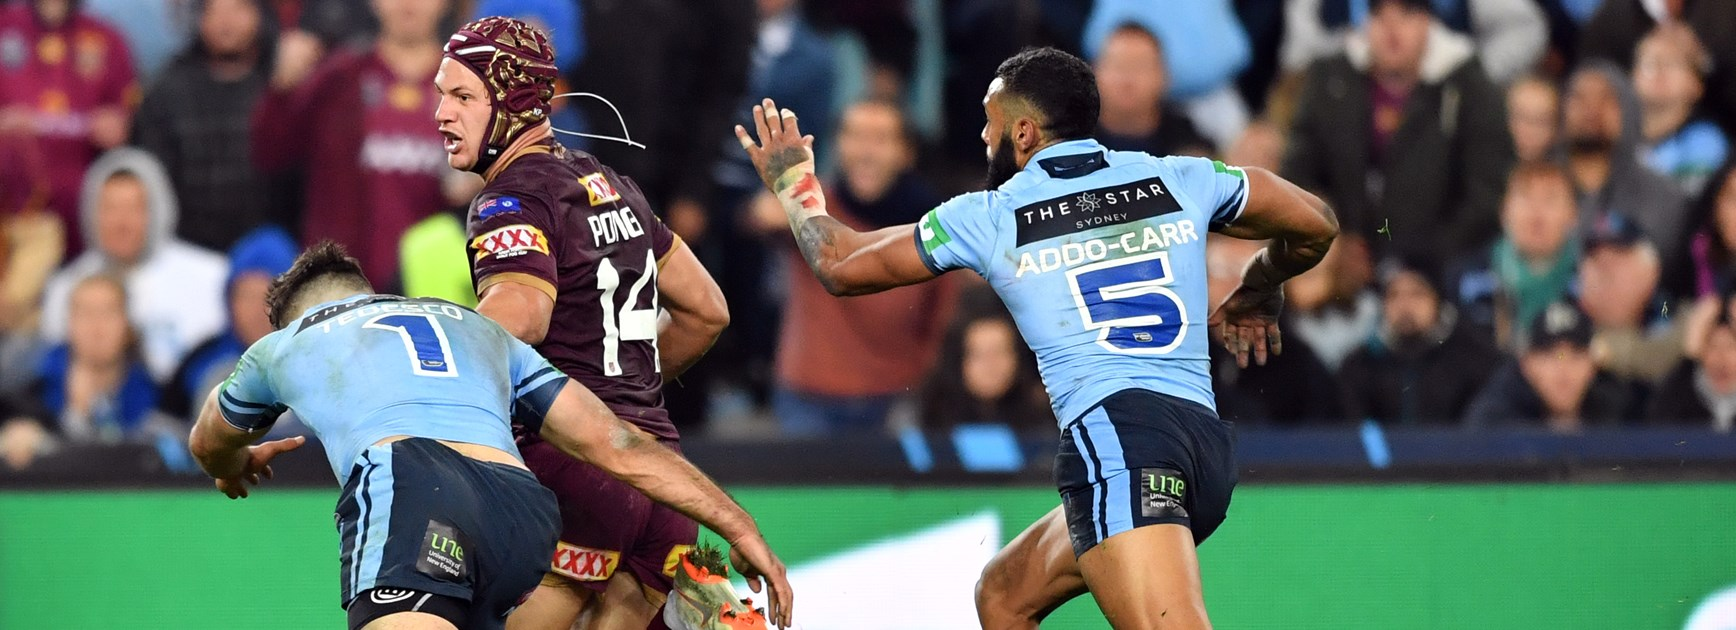 Tedesco pips Addo-Carr to be fastest man in Origin II